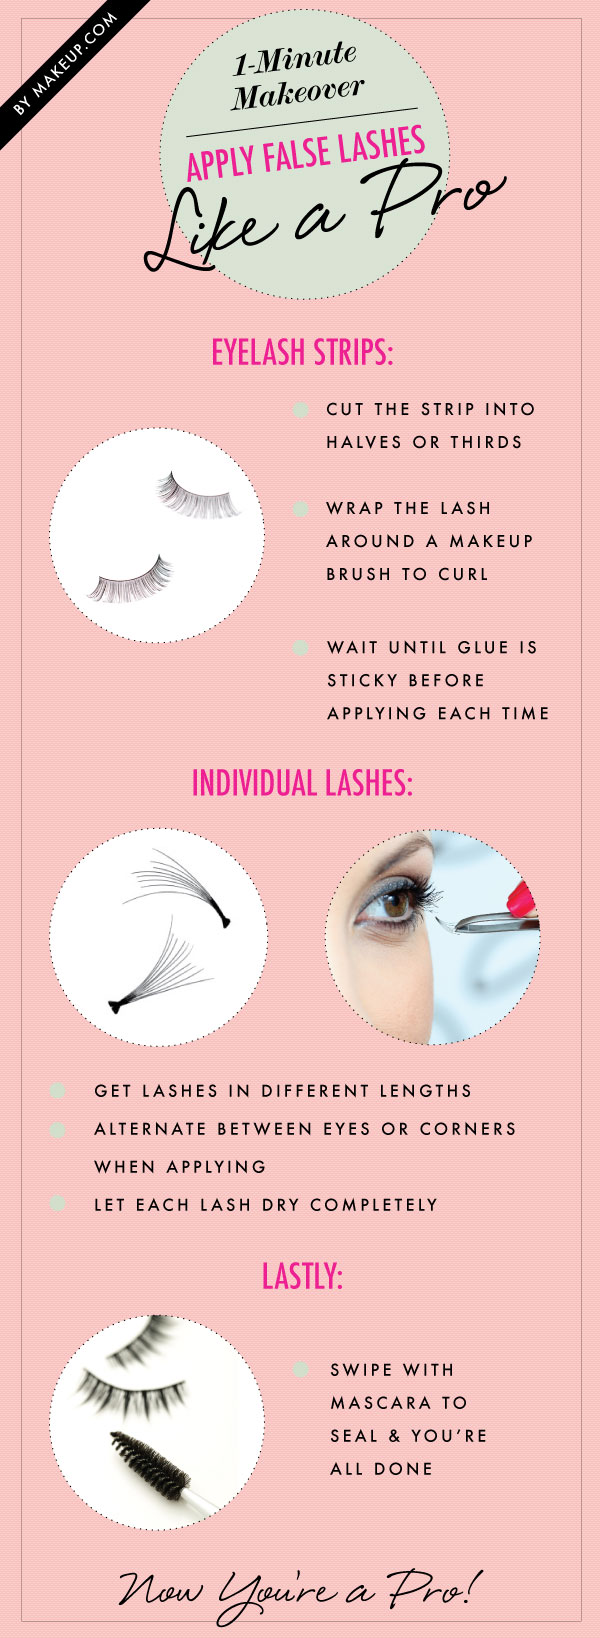 Apply false lashes like a pro.